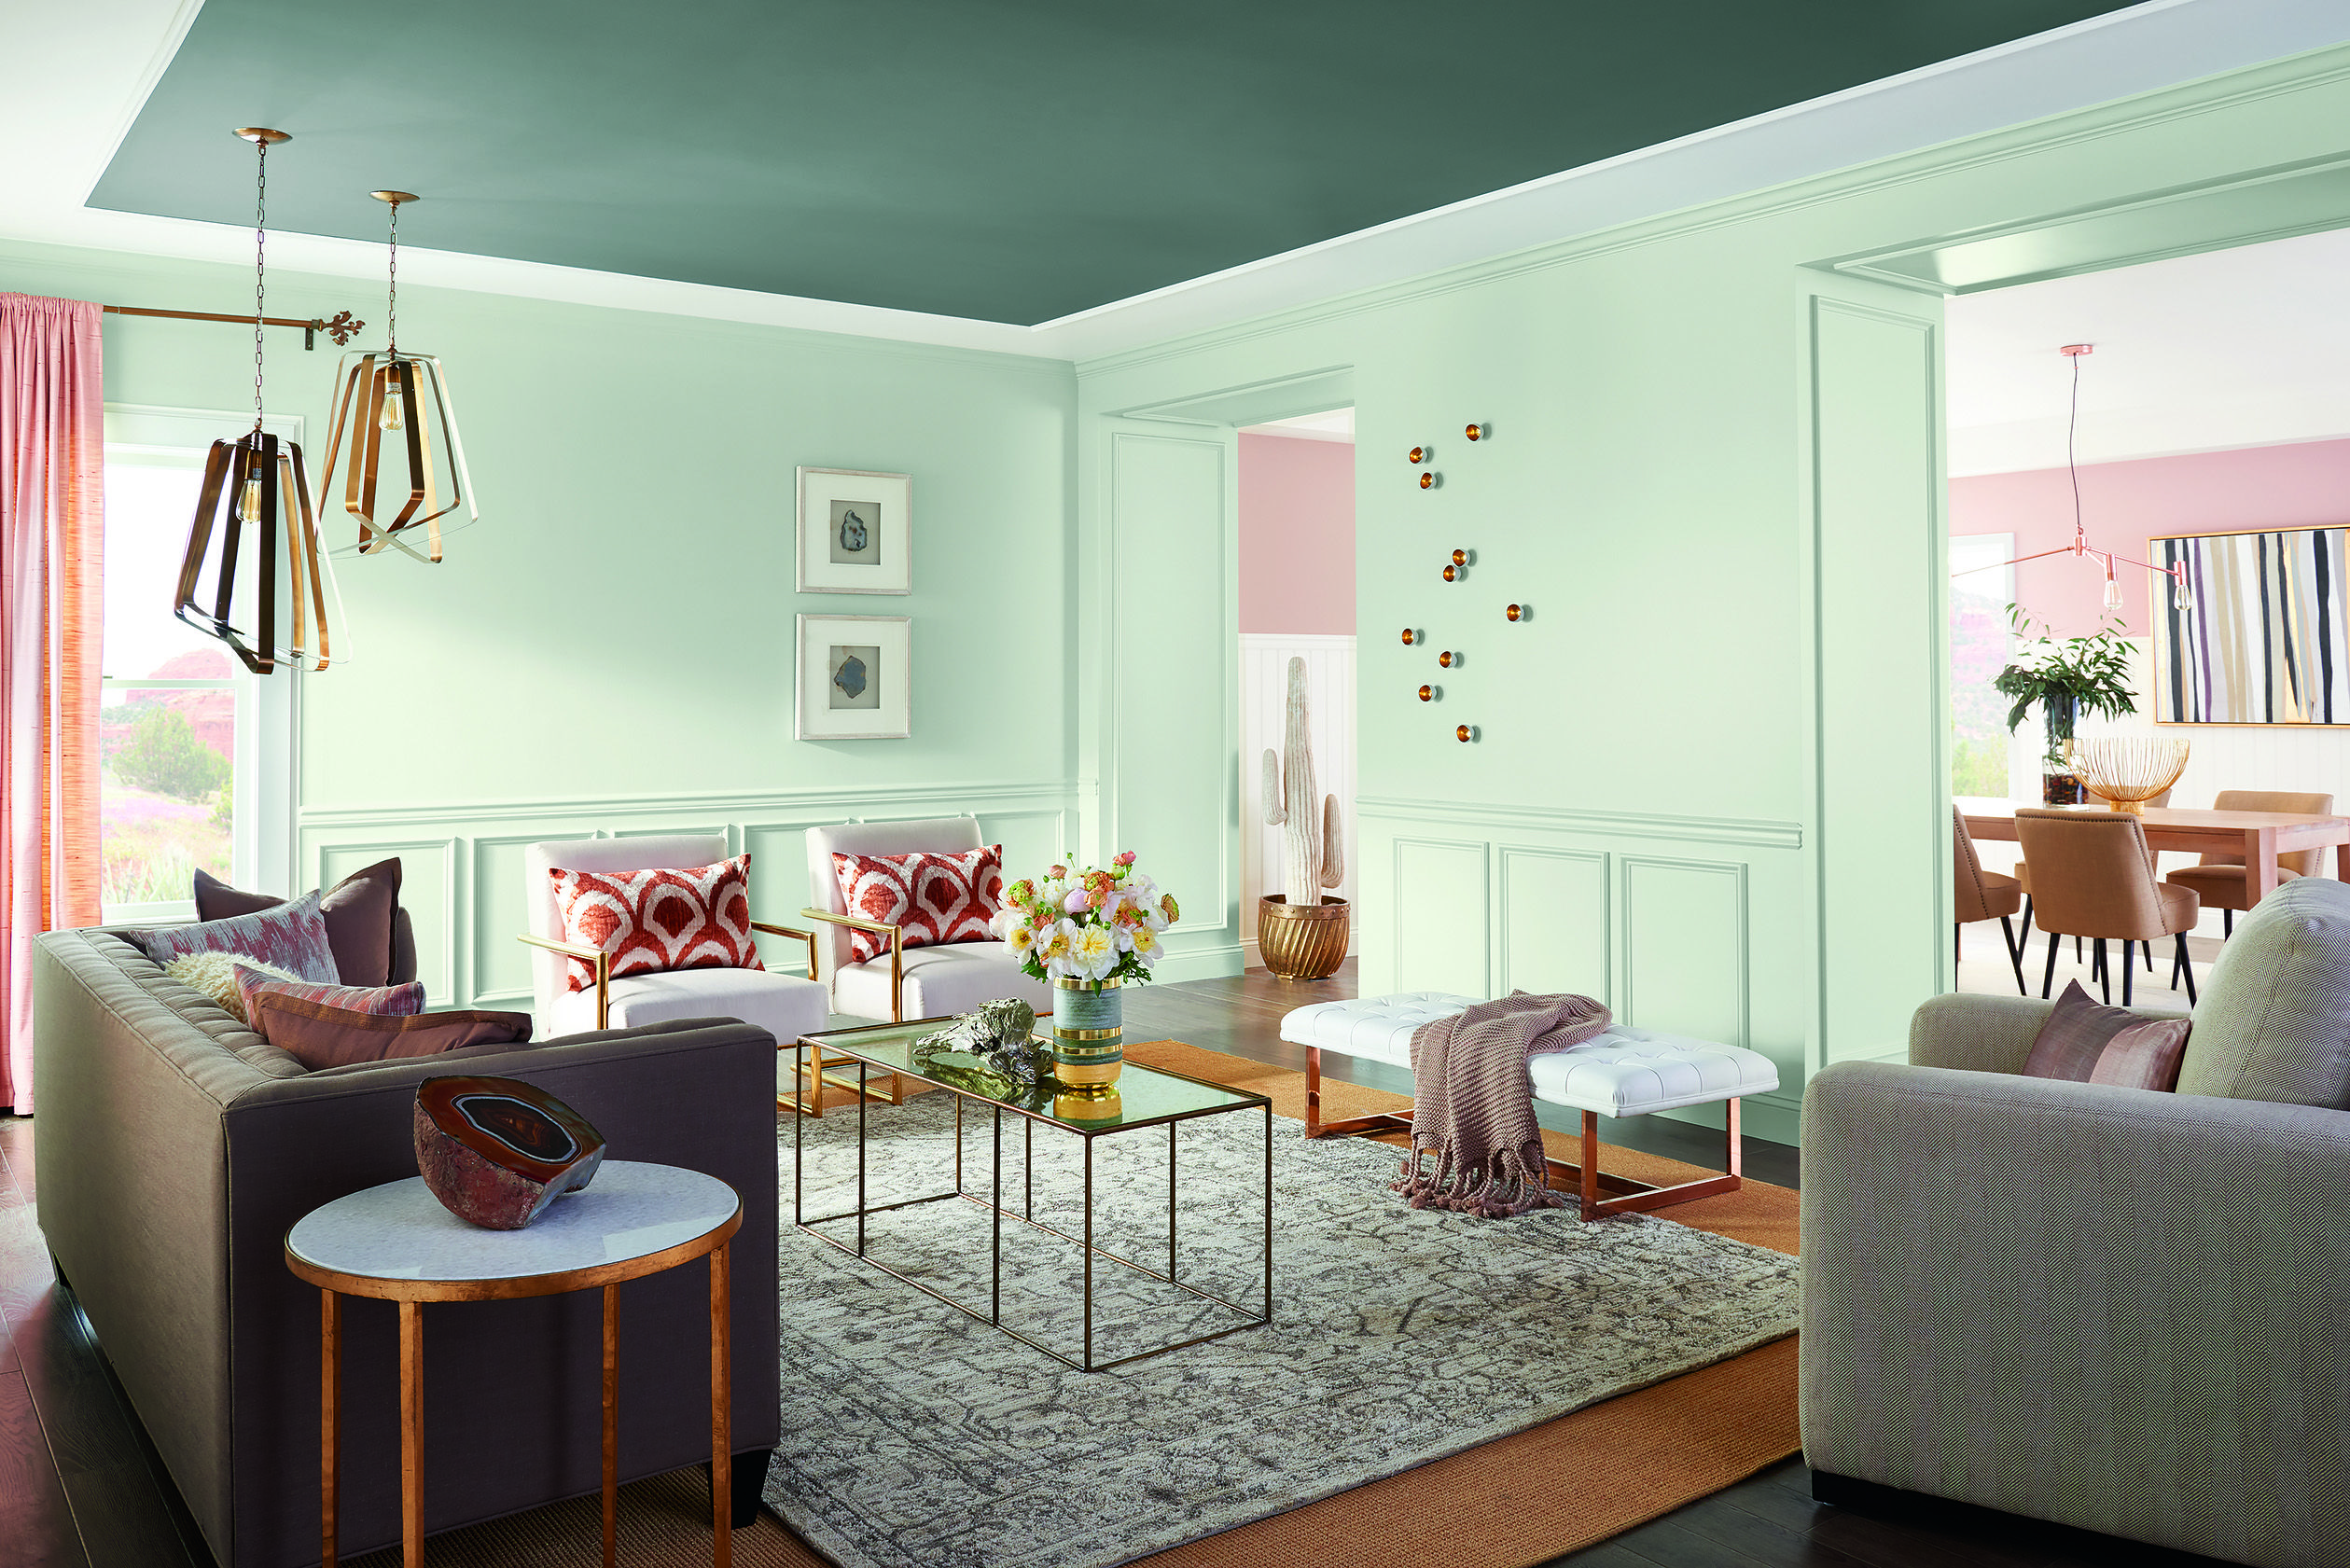 The 2018 Color Trends